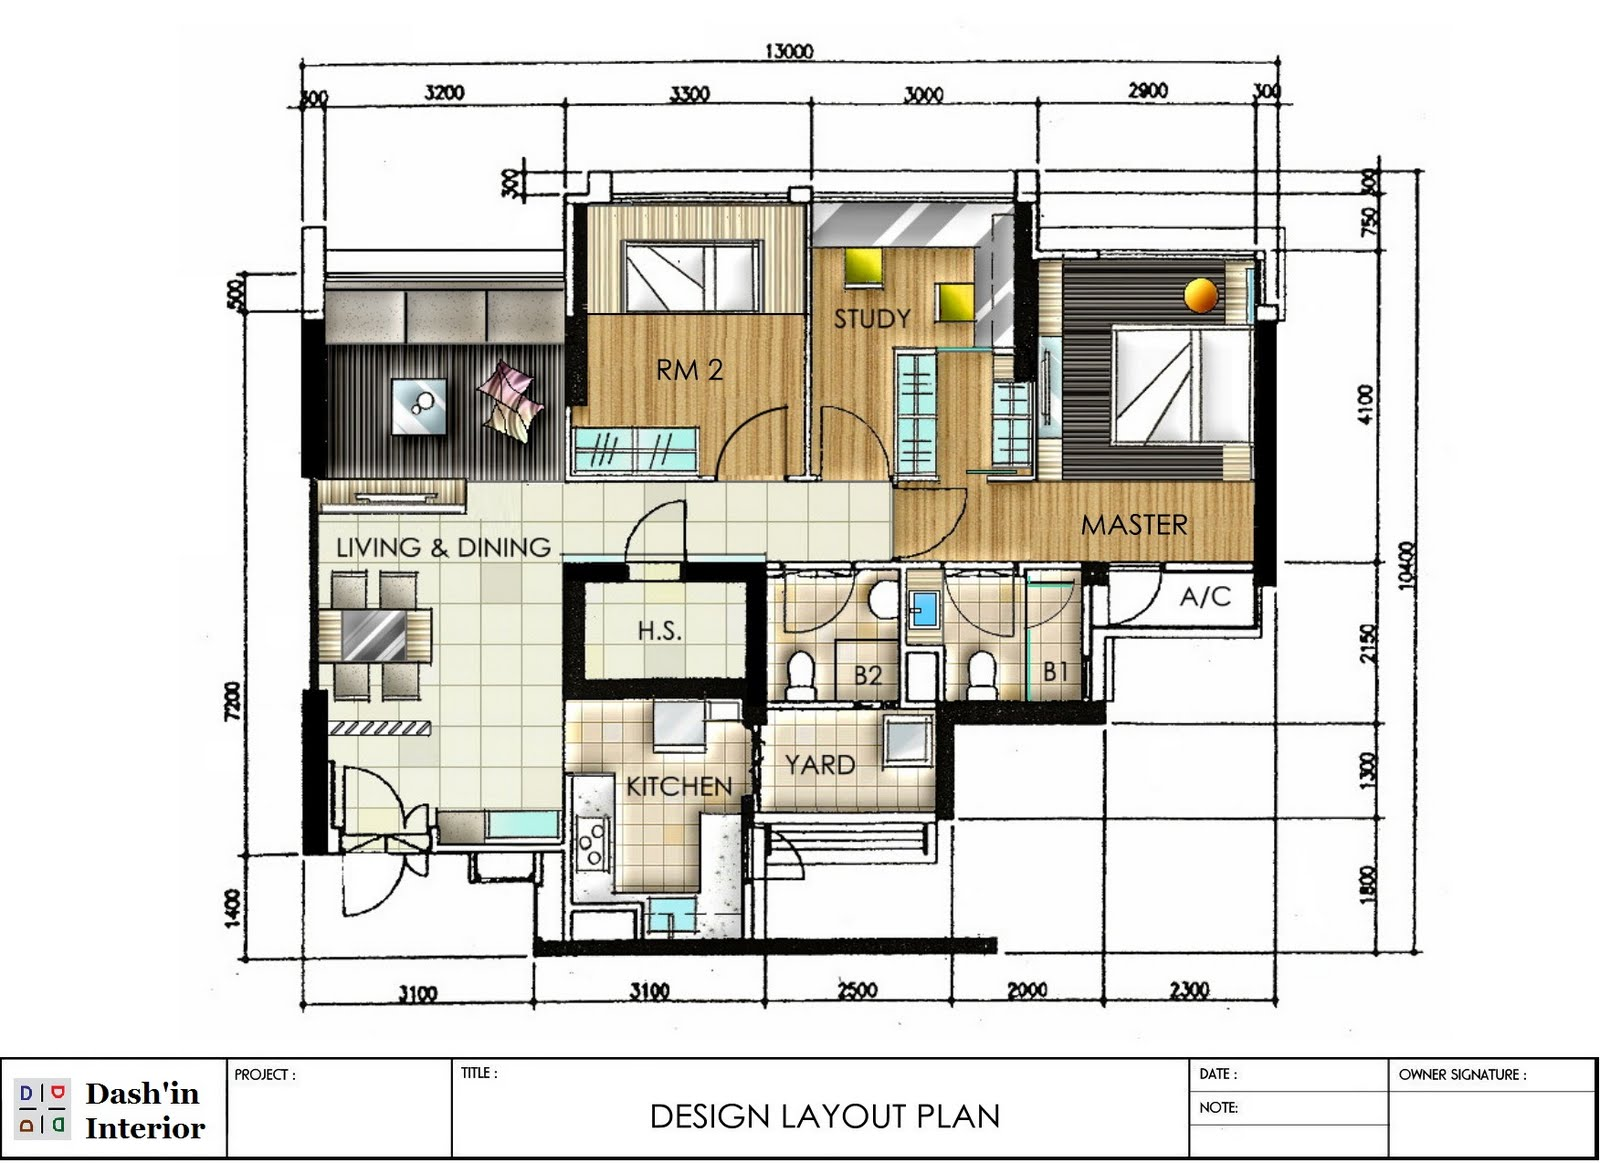 Dash 39 in interior hand drawn designs floor plan layout for Interior design plans for houses